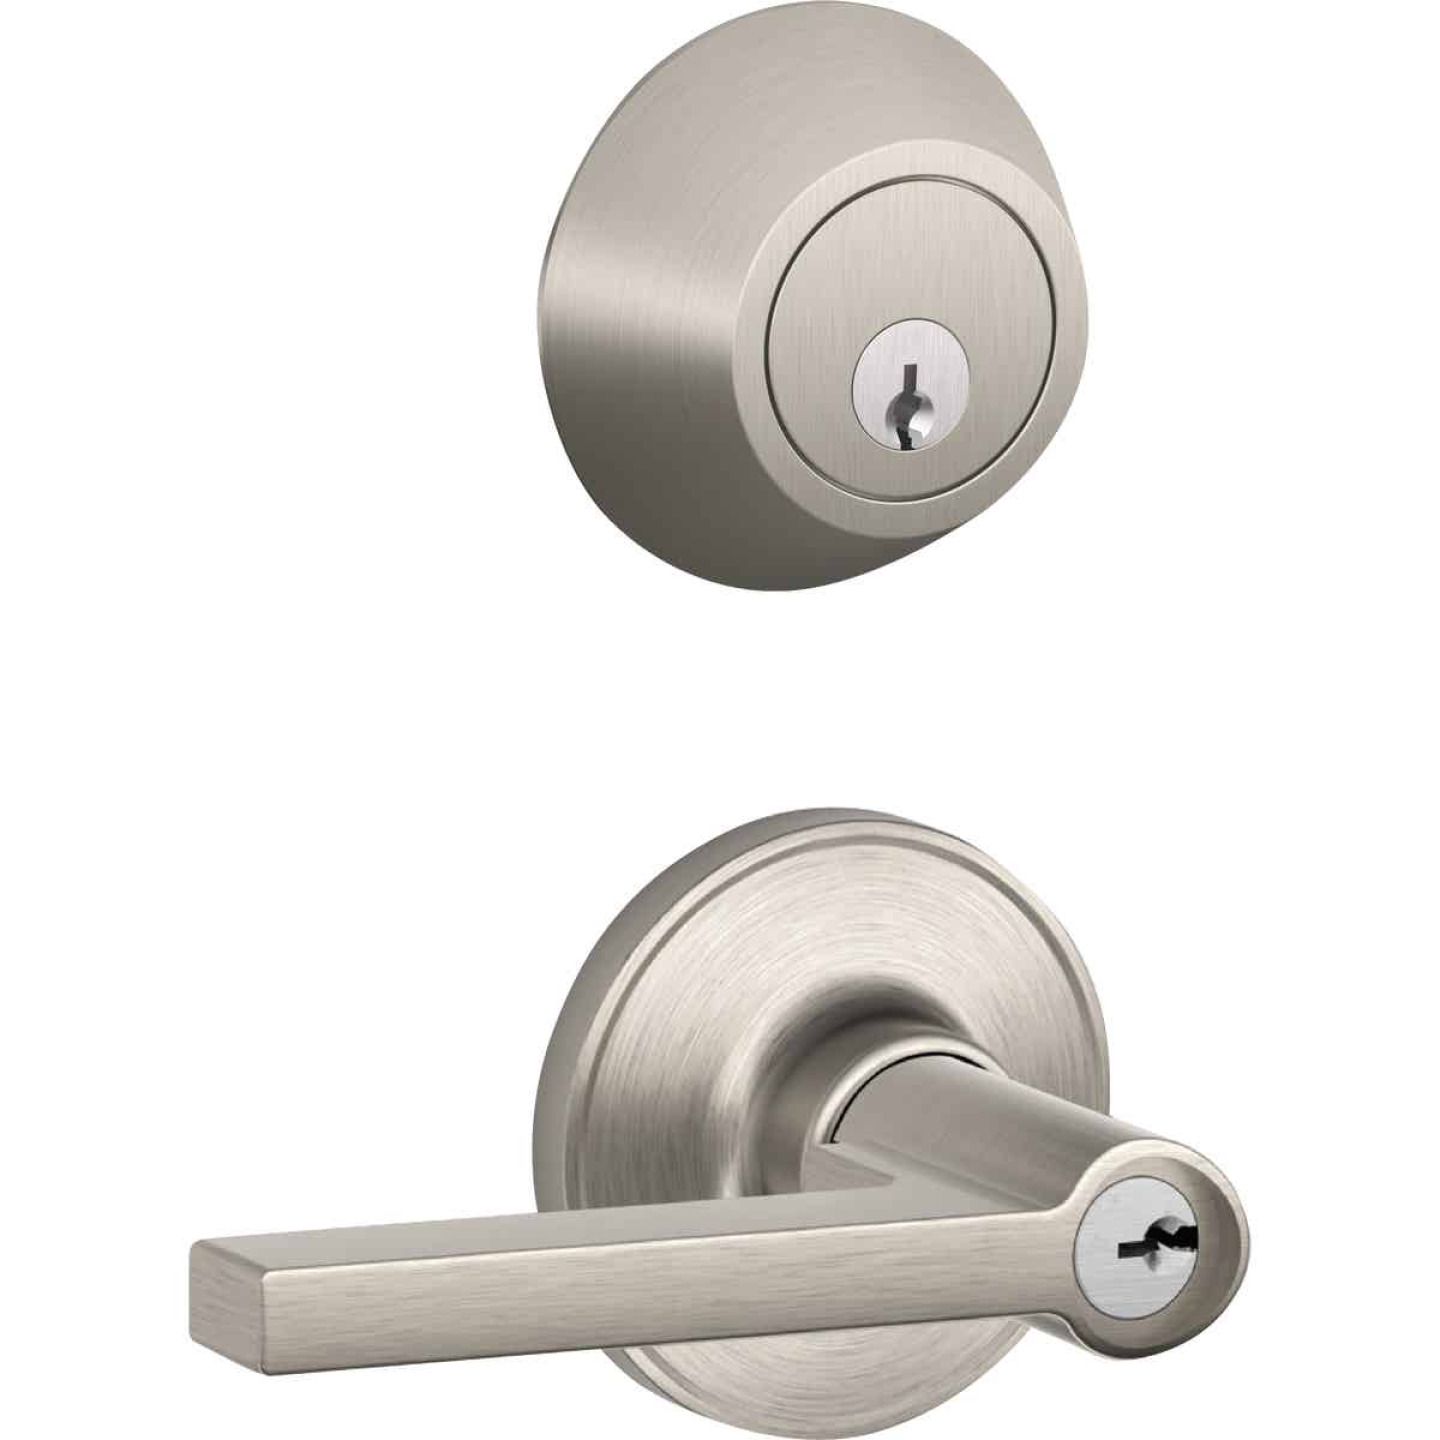 Dexter Solstice Satin Nickel Single Cylinder Deadbolt & Door Lever Combo Image 1